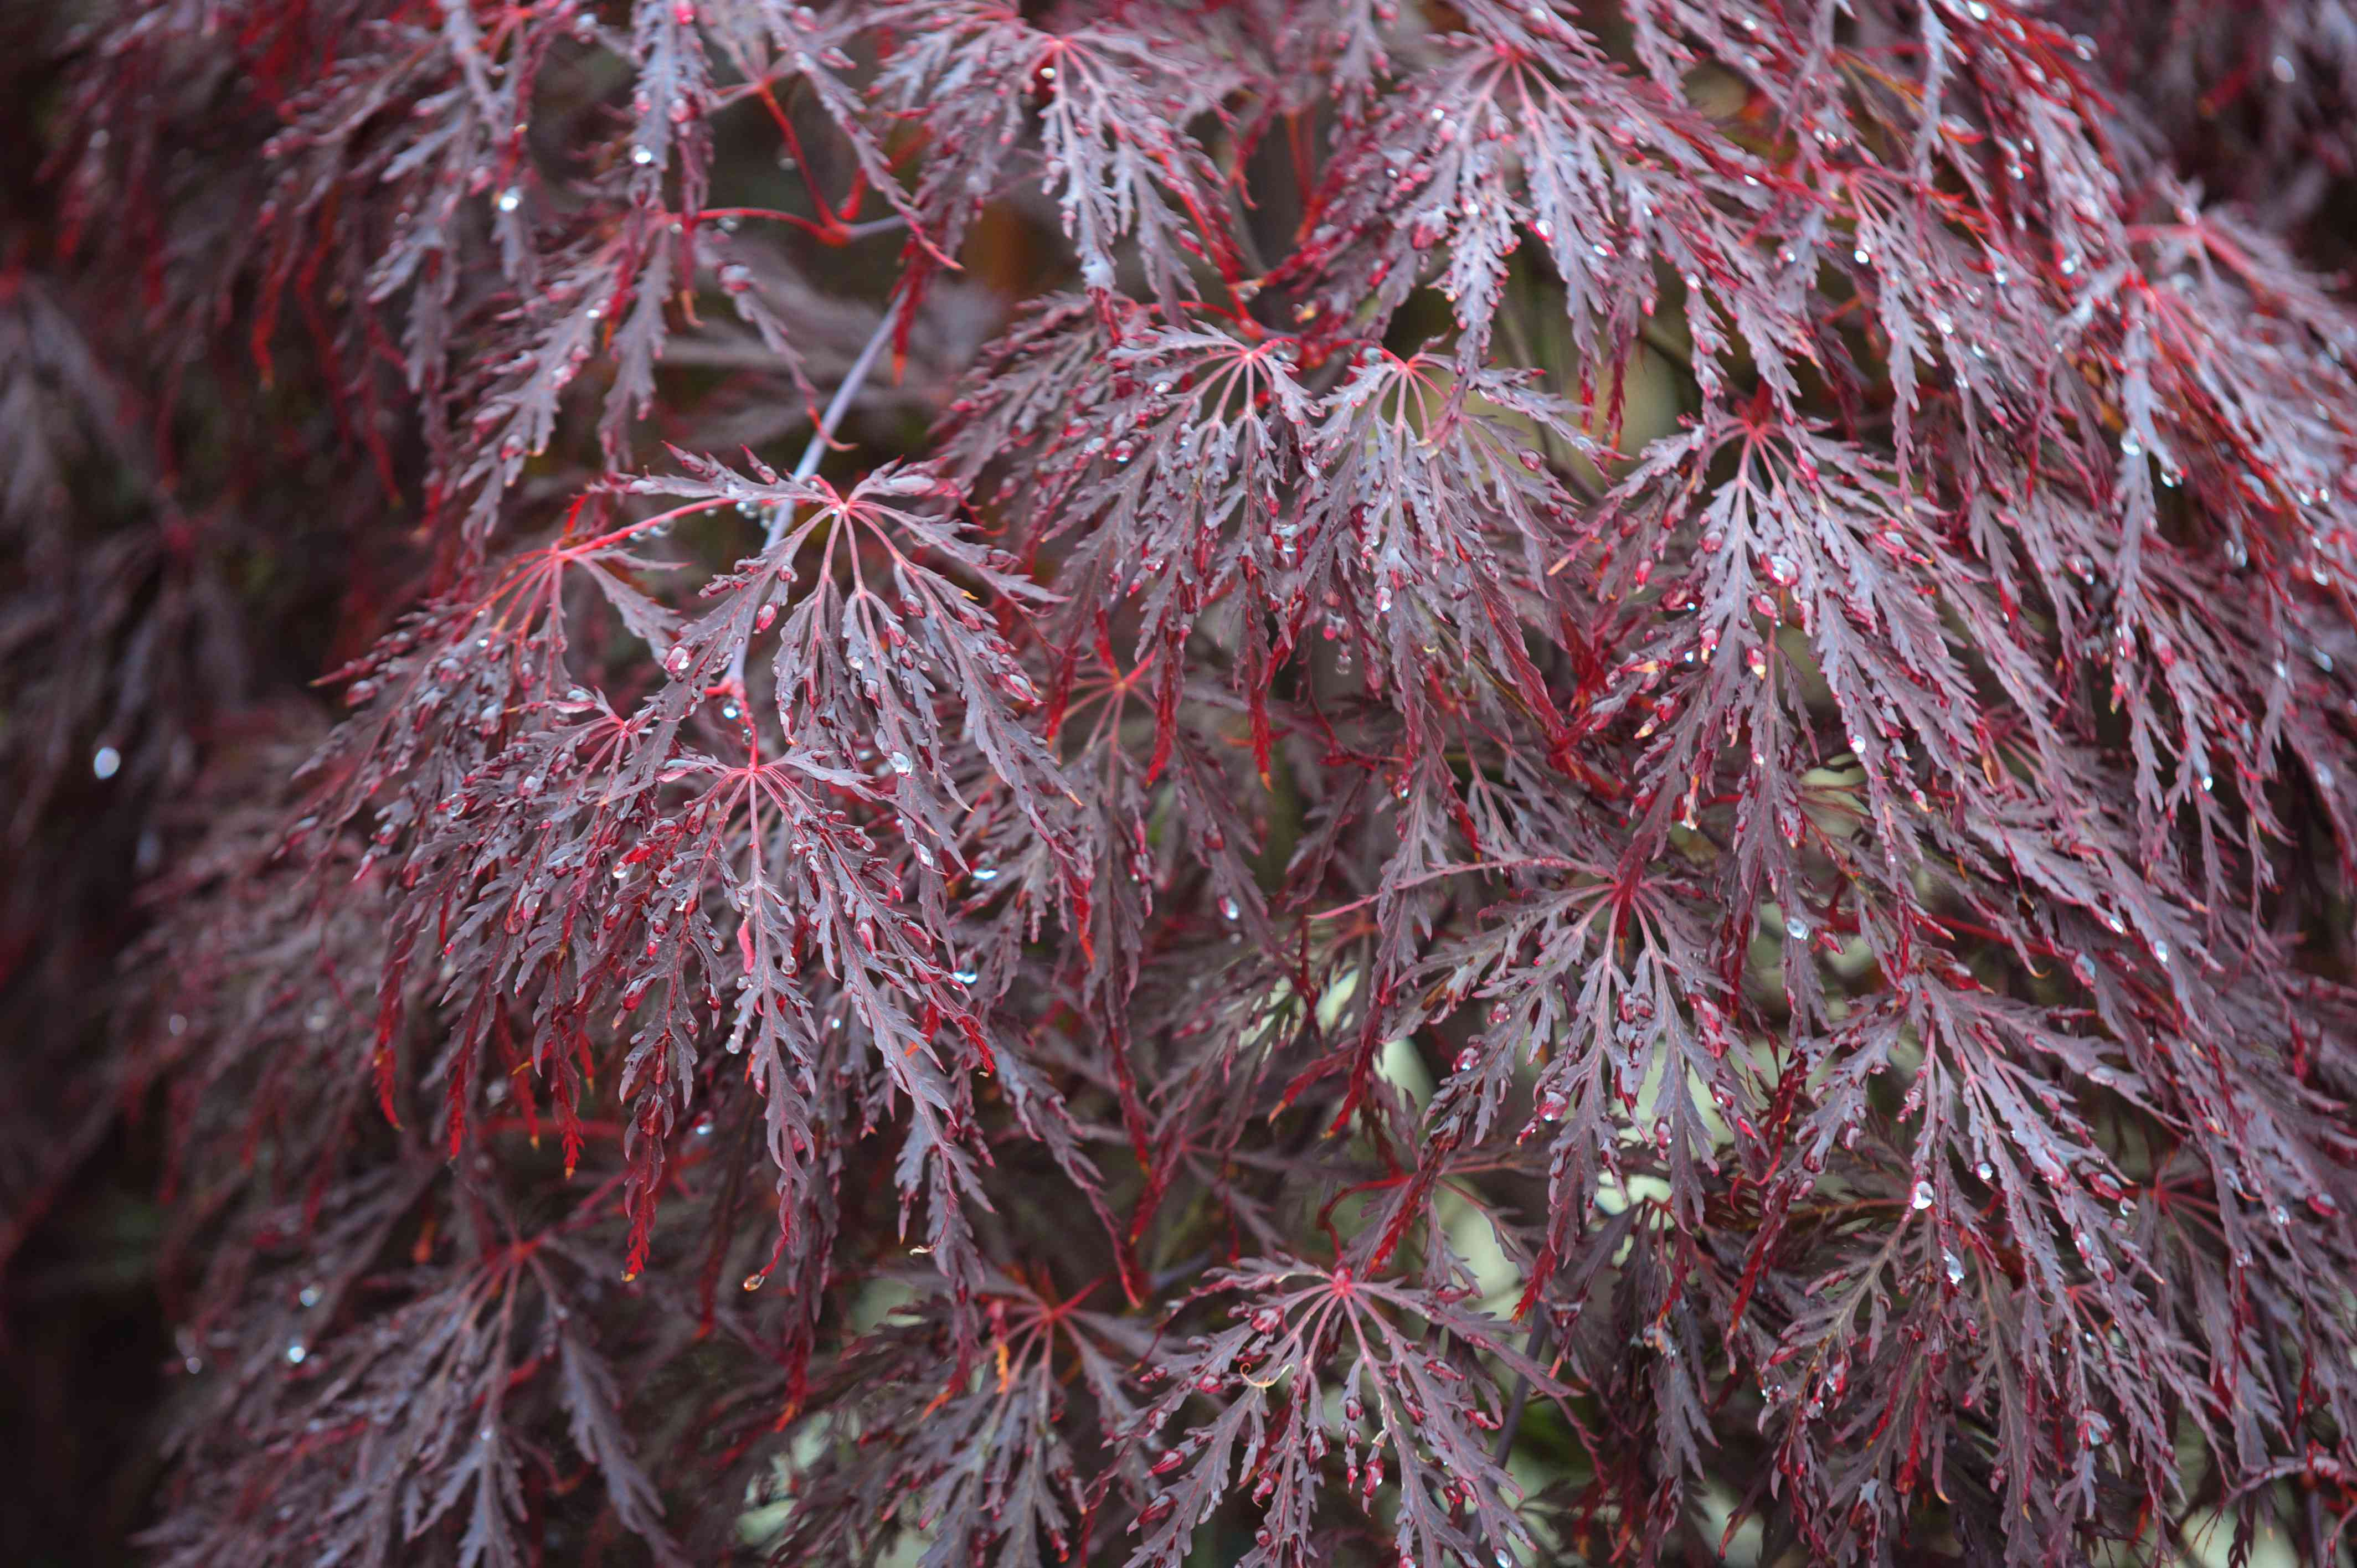 Red dragon Japanese maple tree with dark red feathery leaves on weeping branches